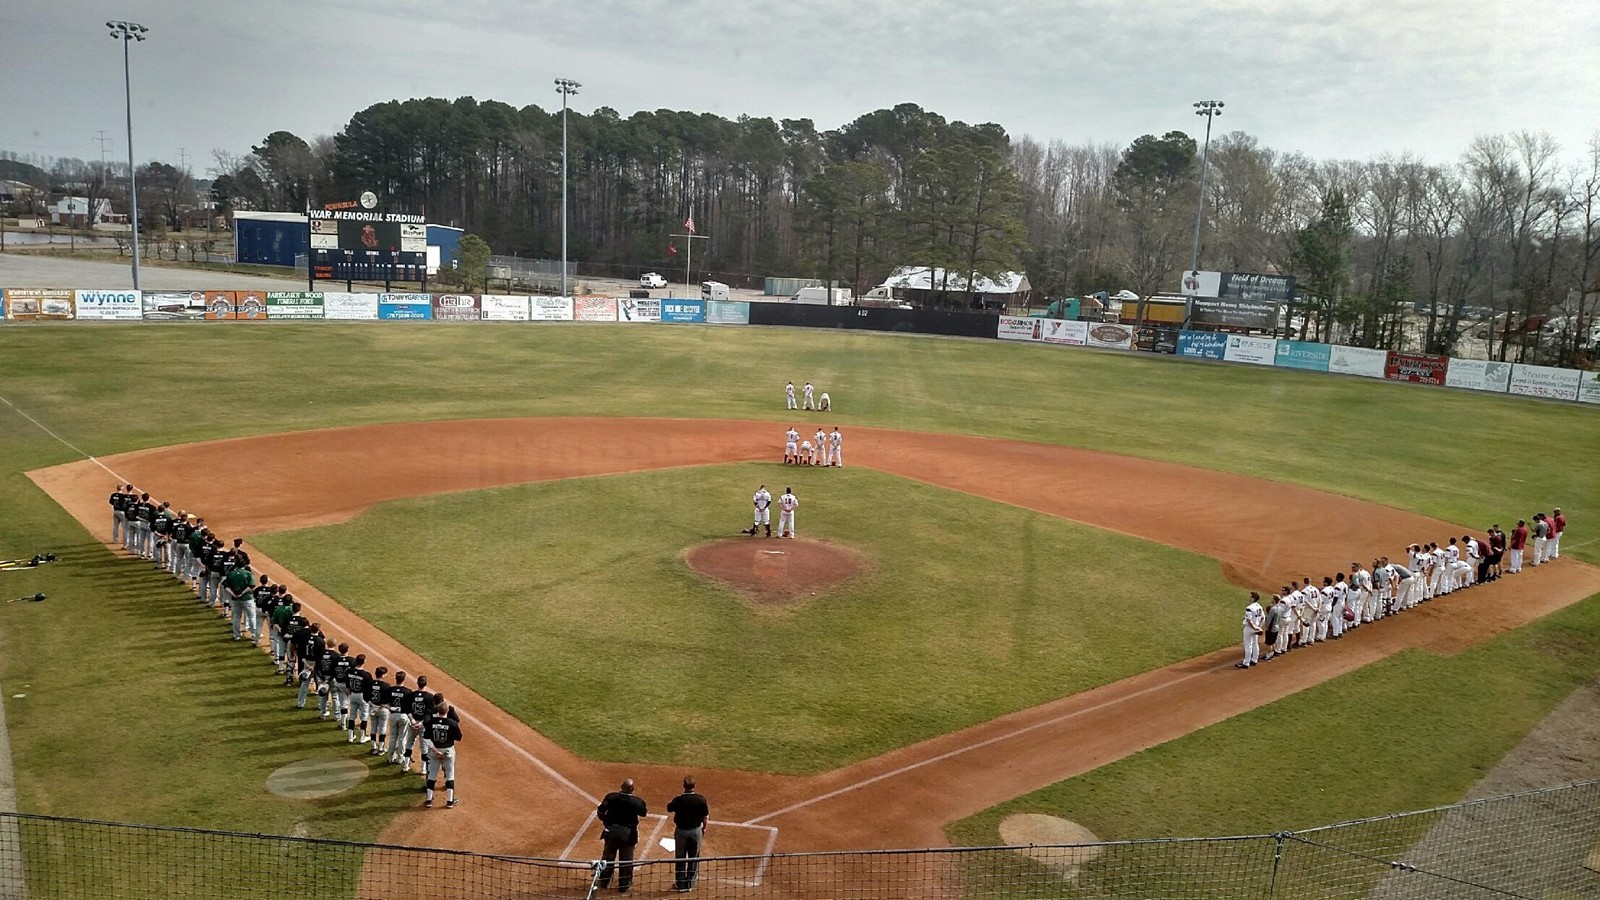 Saint Vincent Bearcats Martin Leads Svc To Series Sweep In Virginia